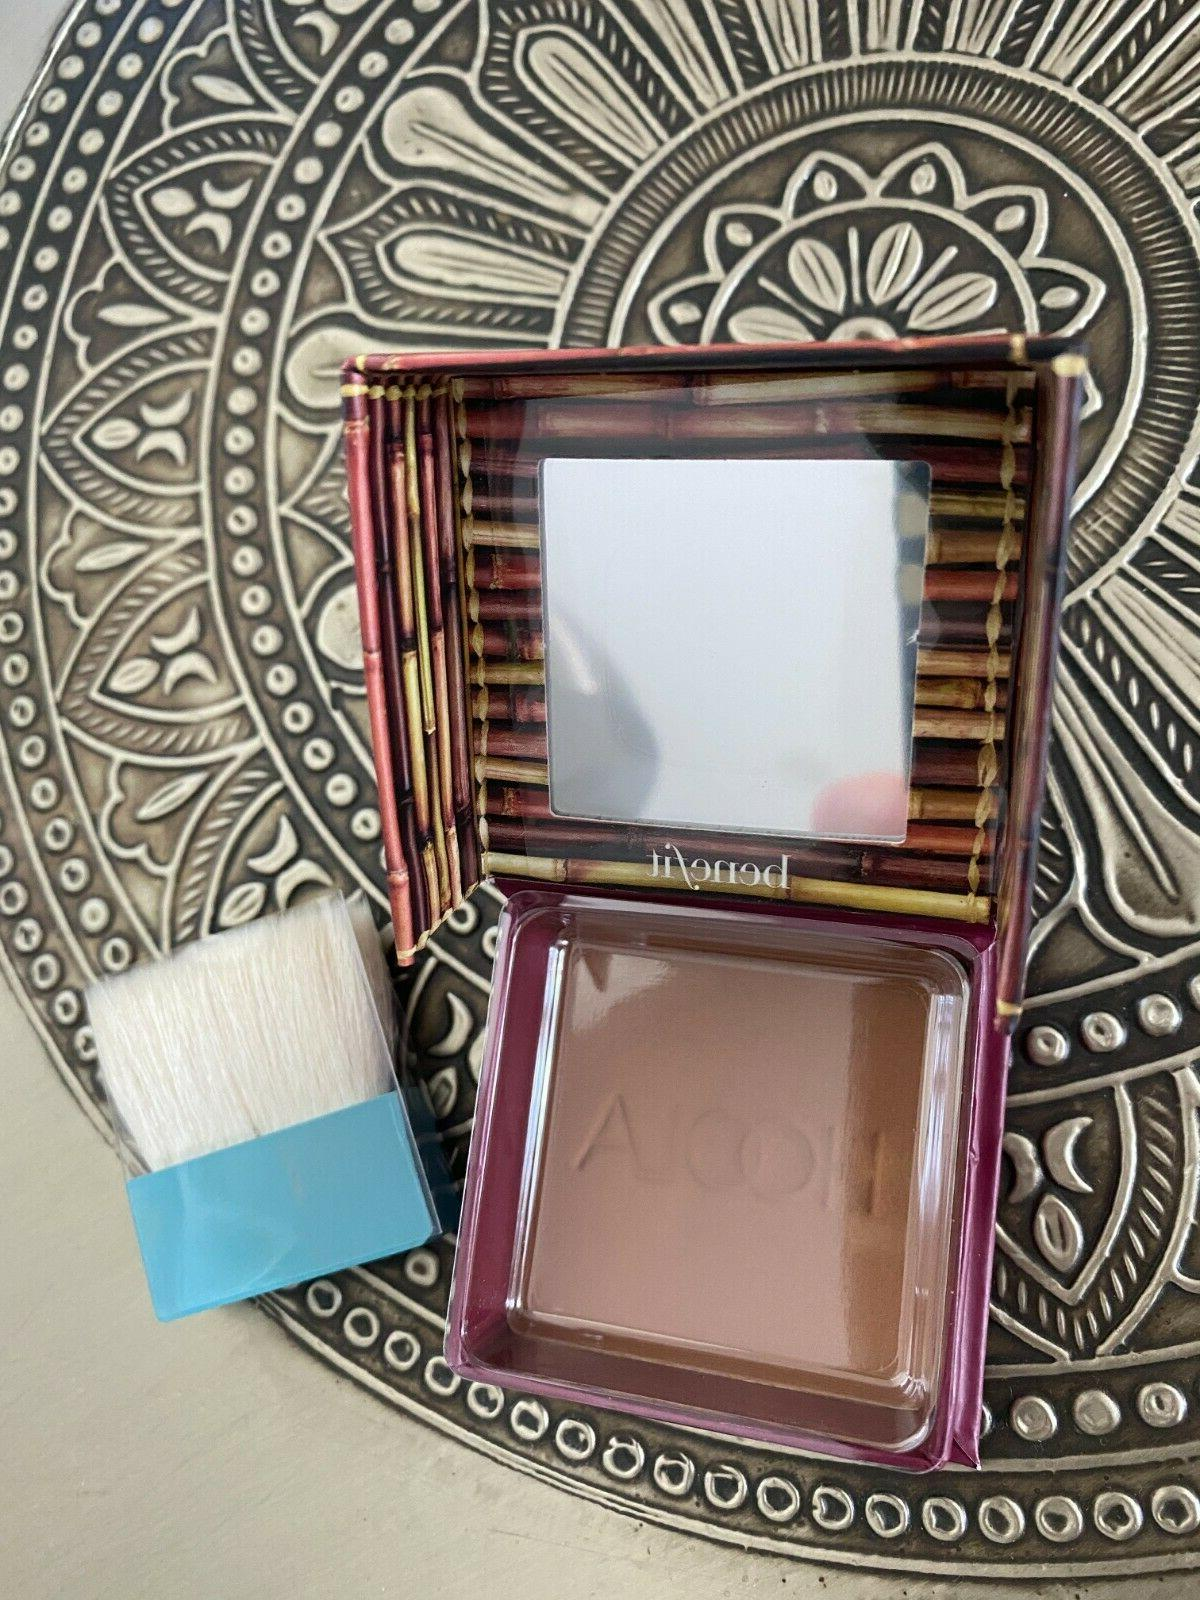 $30 Benefit HOOLA Matte Bronzing Powder & Brush 0.28 Oz 8 g